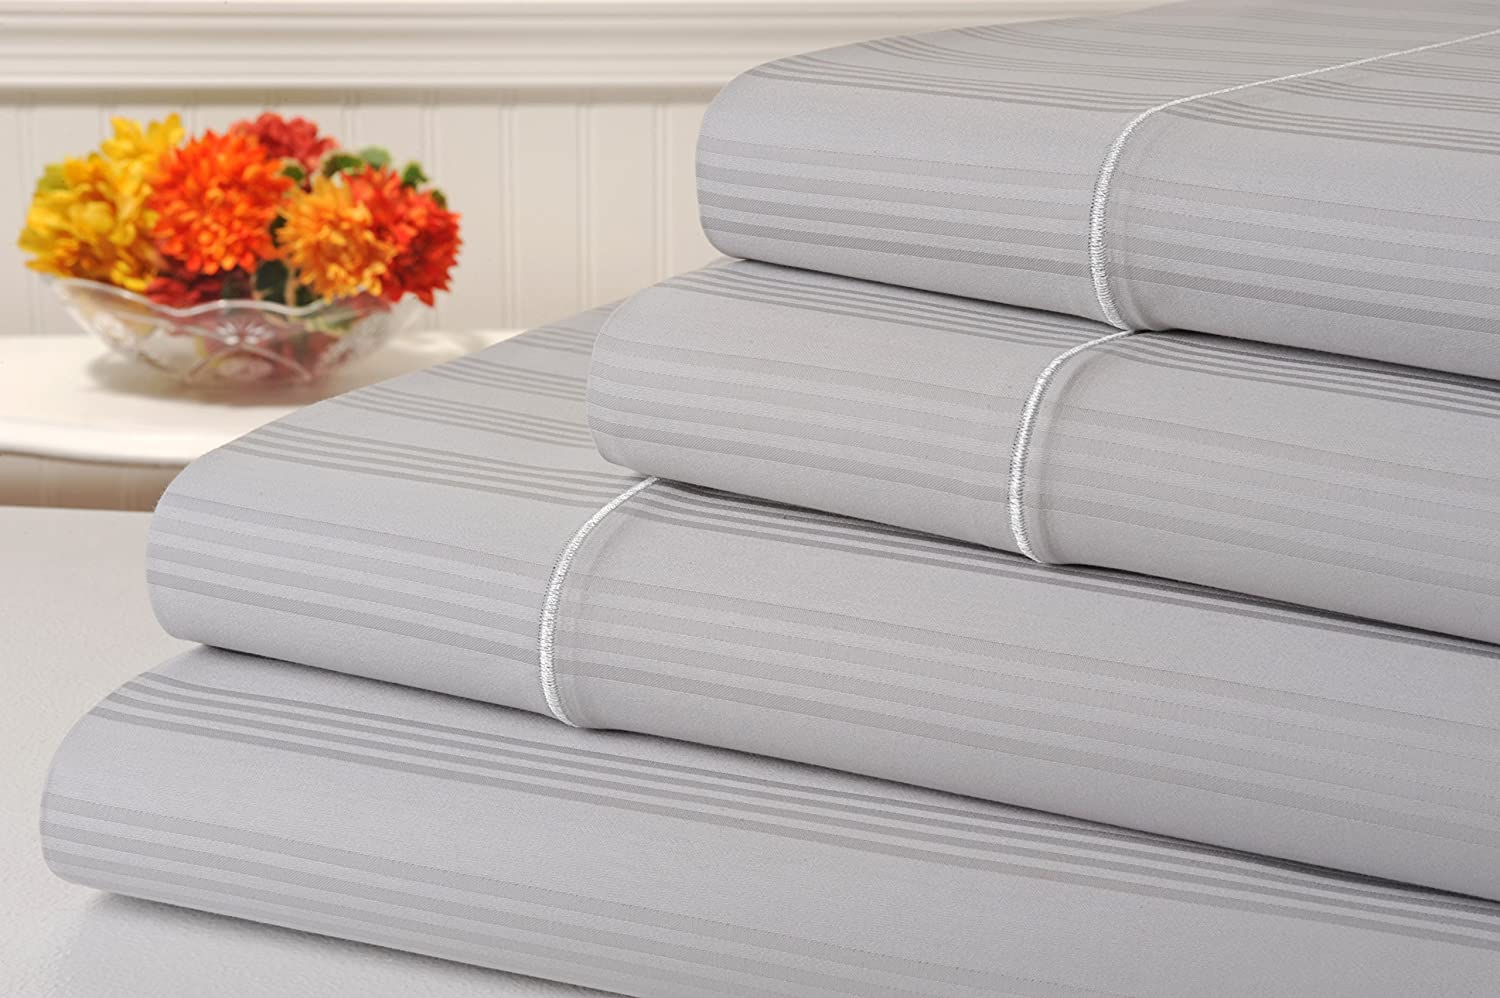 kathy ireland 1206KGGR Sheet Set, King, Grey